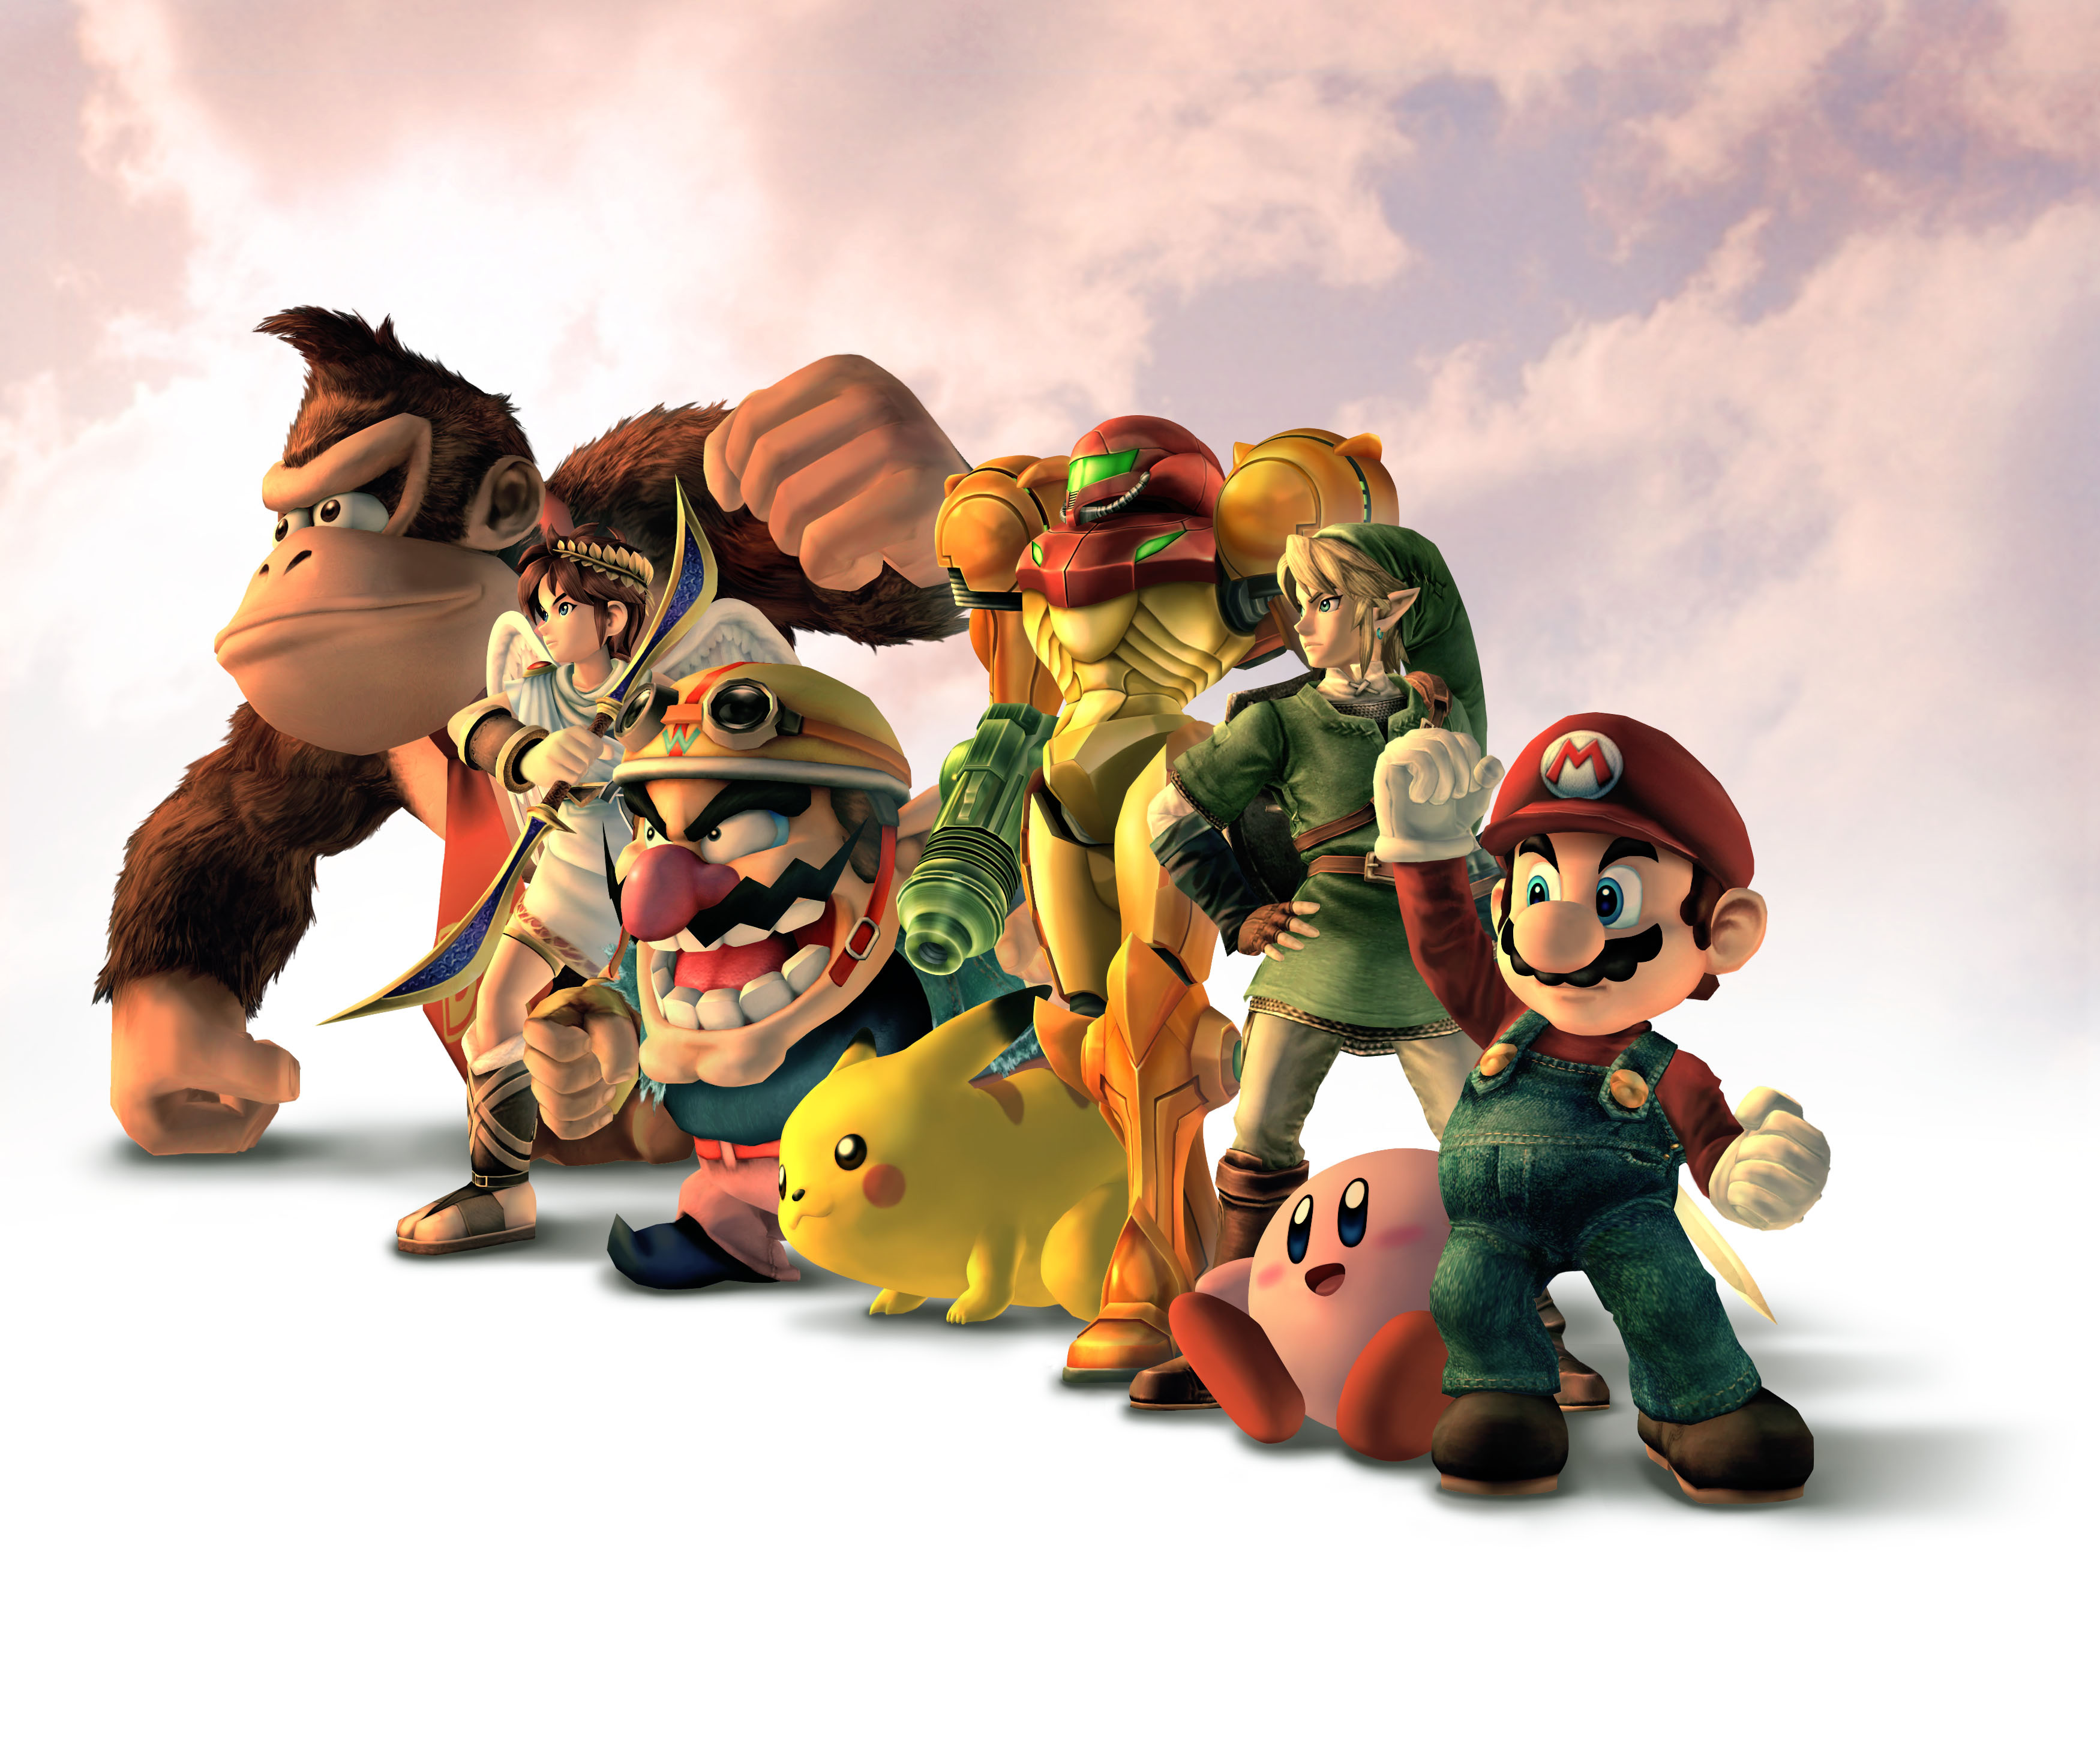 Video Game - Super Smash Bros.  - Donkey Kong - Wario - Pit - Pikachu - Kirby - Mario - Link - Samus Wallpaper